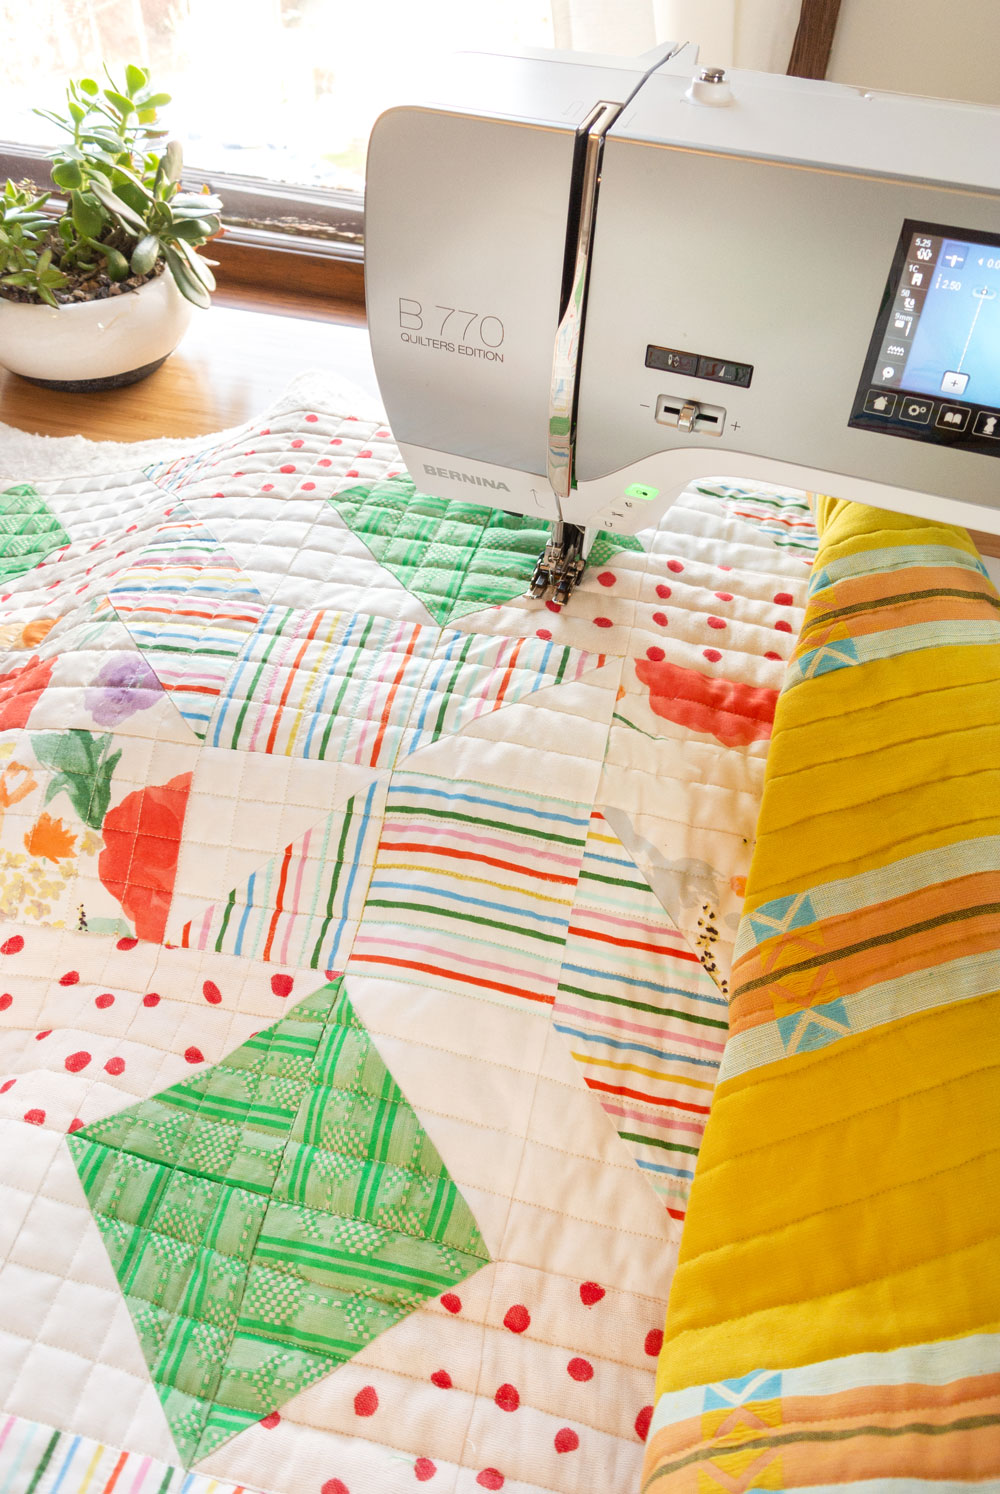 Learn the 6 simple steps to straight line quilting, or as some call it, matchstick quilting. This is a great beginner quilter tutorial! | Suzy Quilts - https://suzyquilts.com/6-tips-for-straight-line-machine-quilting-a-k-a-matchstick-quilting